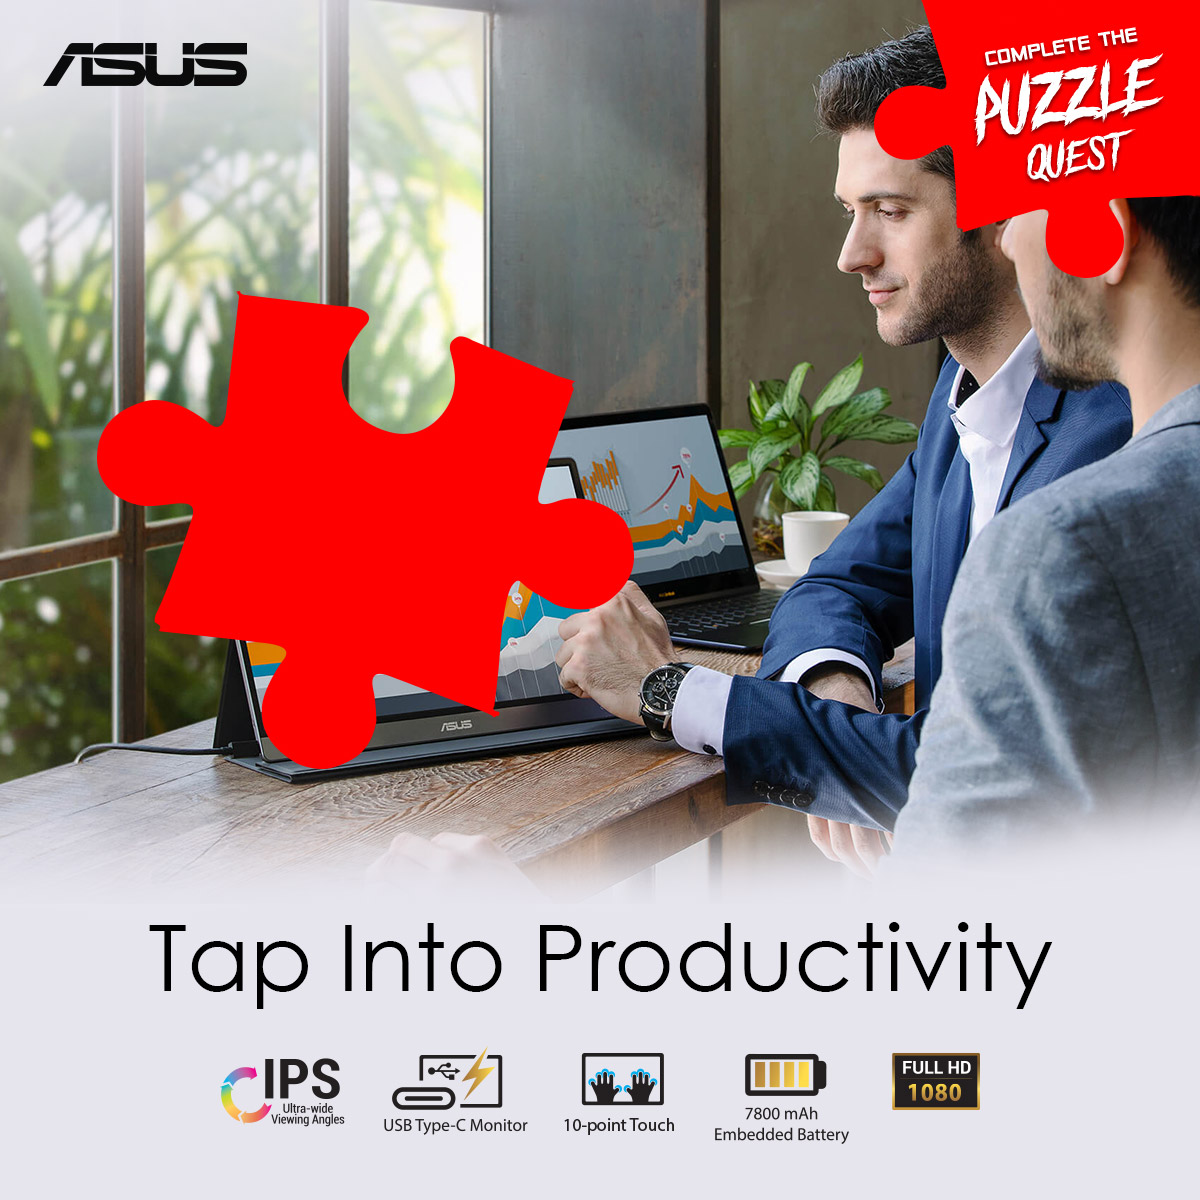 ⚠️🚨 GIVEAWAY ALERT 🚨⚠️ Dropping the 5th hint for   #ASUSPuzzleQuest  HINT: This slim and lightweight portable monitor with a large 7800mAh built-in battery is designed  take your mobile productivity to new heights.  Complete mechanics 👉 https://t.co/k4slWonI98 #ASUSROGMonitors https://t.co/SyjMkltrqo